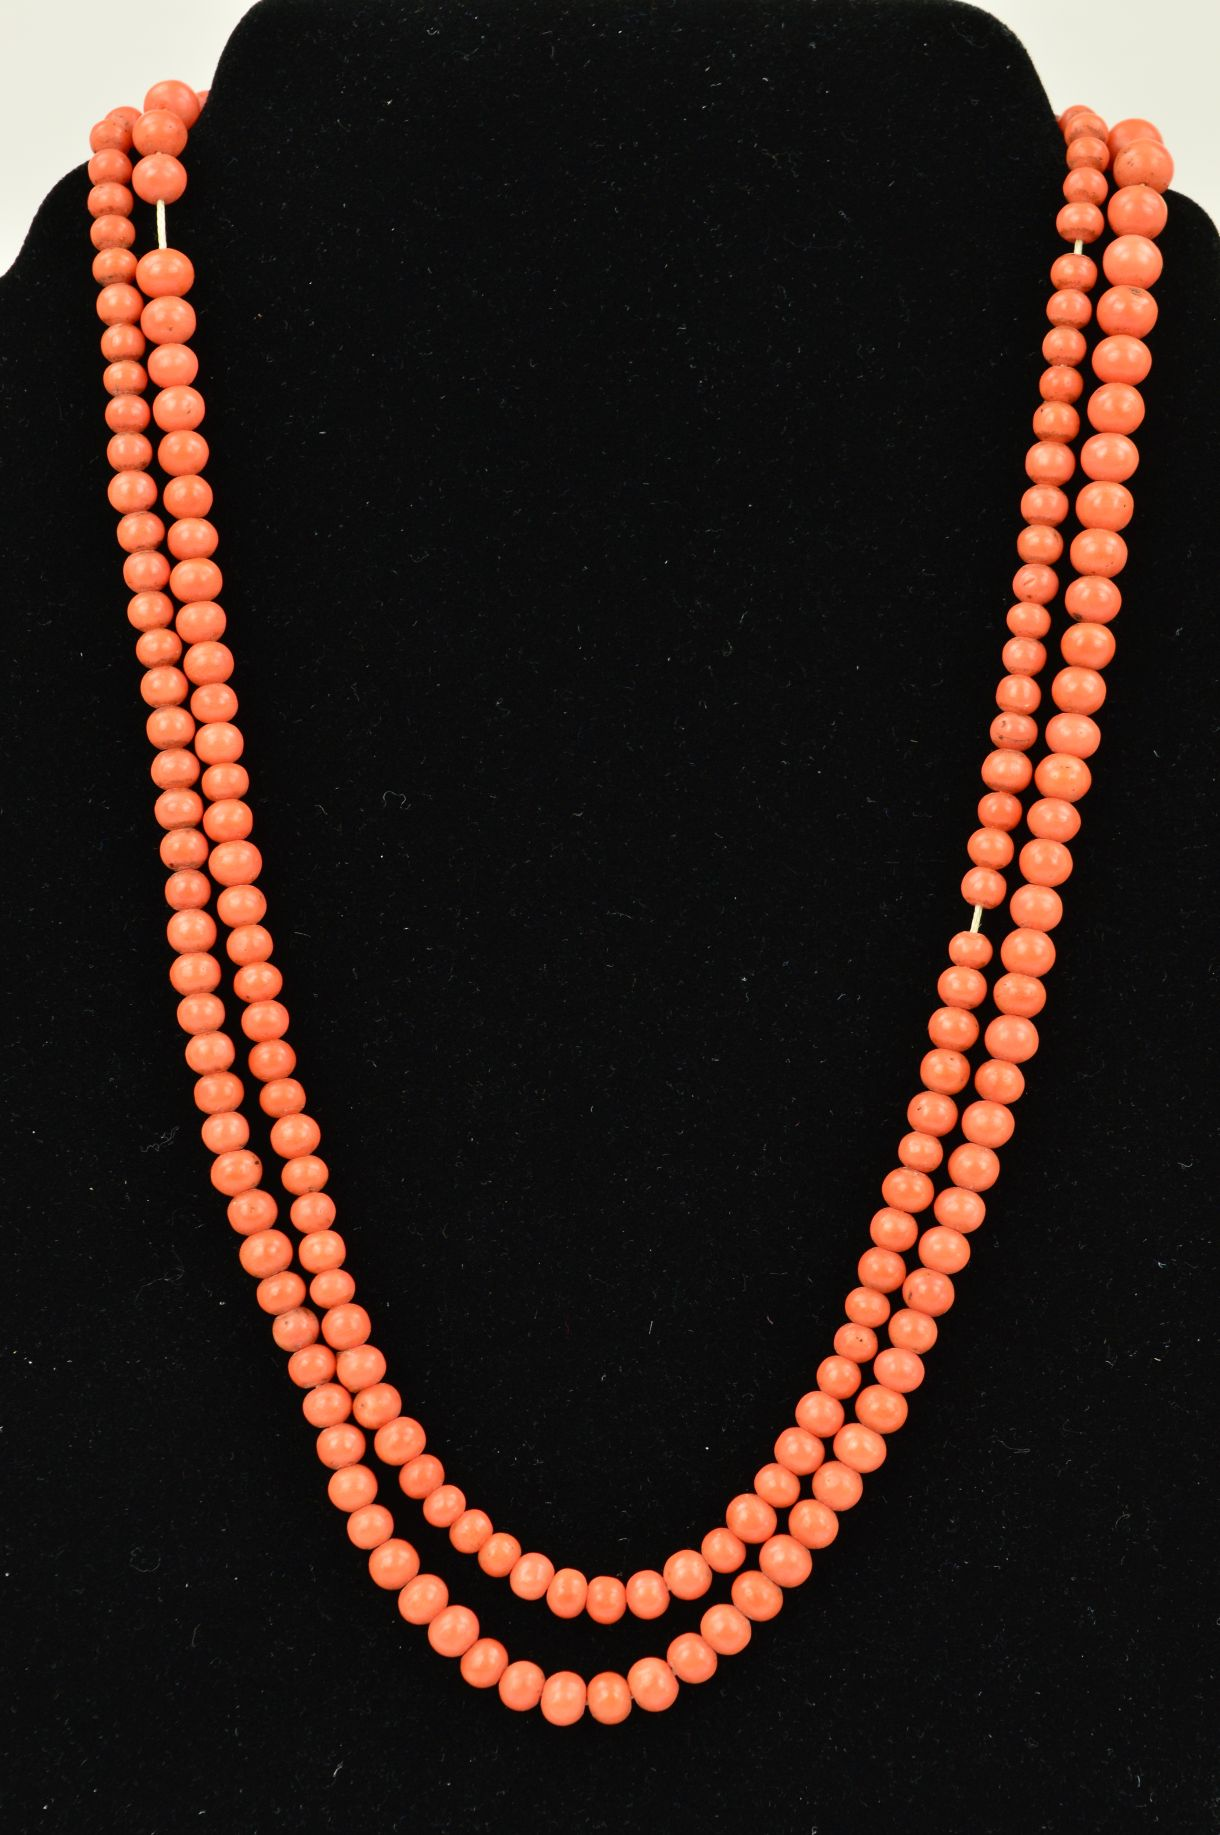 Lot 33 - AN EARLY 20TH CENTURY CORAL BEAD NECKLACE, the graduated beads measuring 3mm to 7mm, to the spring